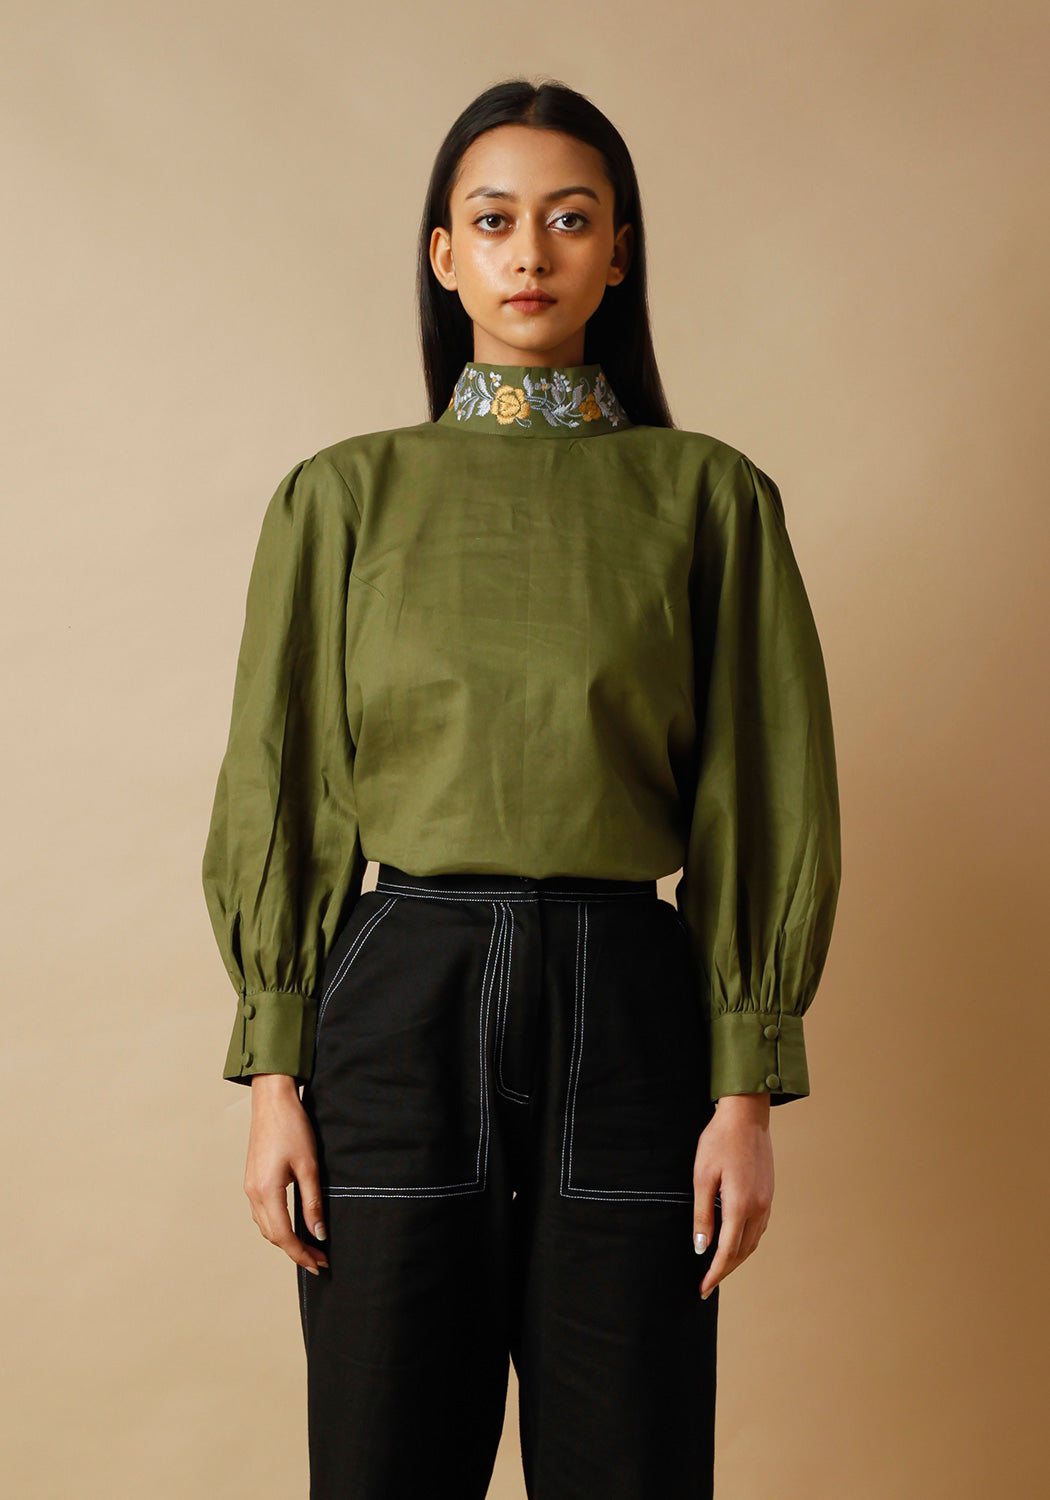 The Sybil Blouse